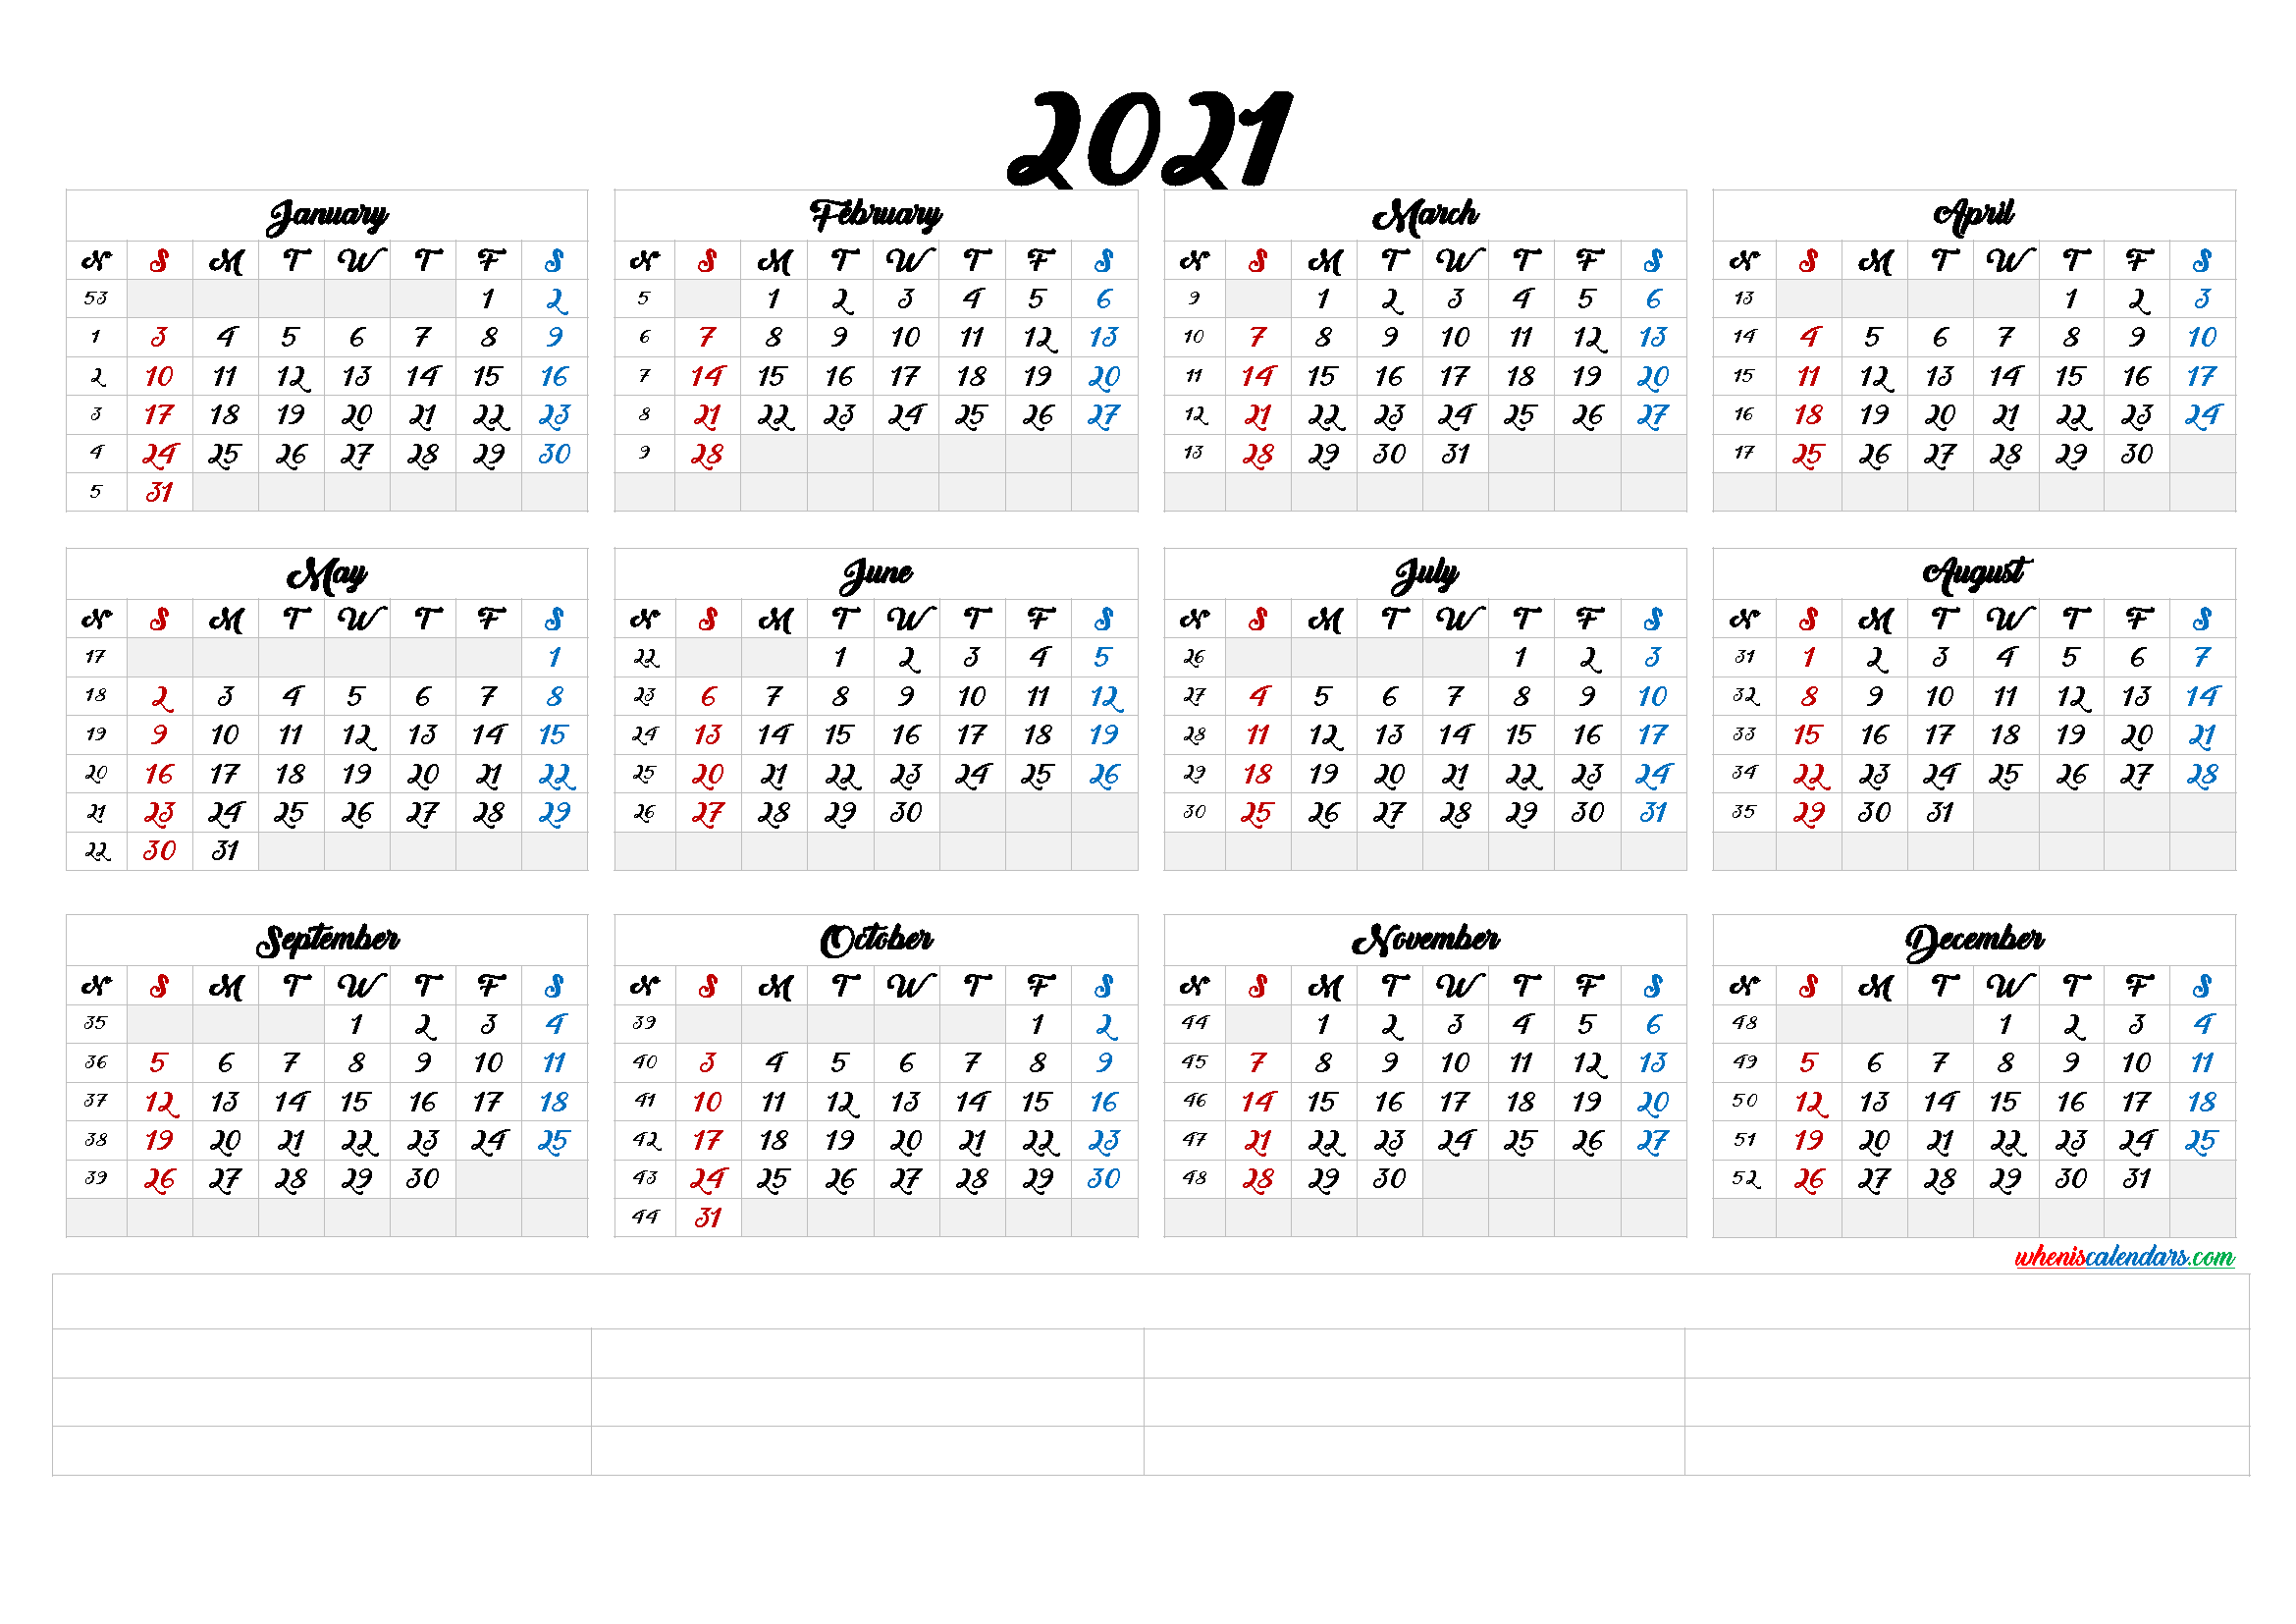 Free Printable 2021 Calendar by Month (6 Templates) - Free ...